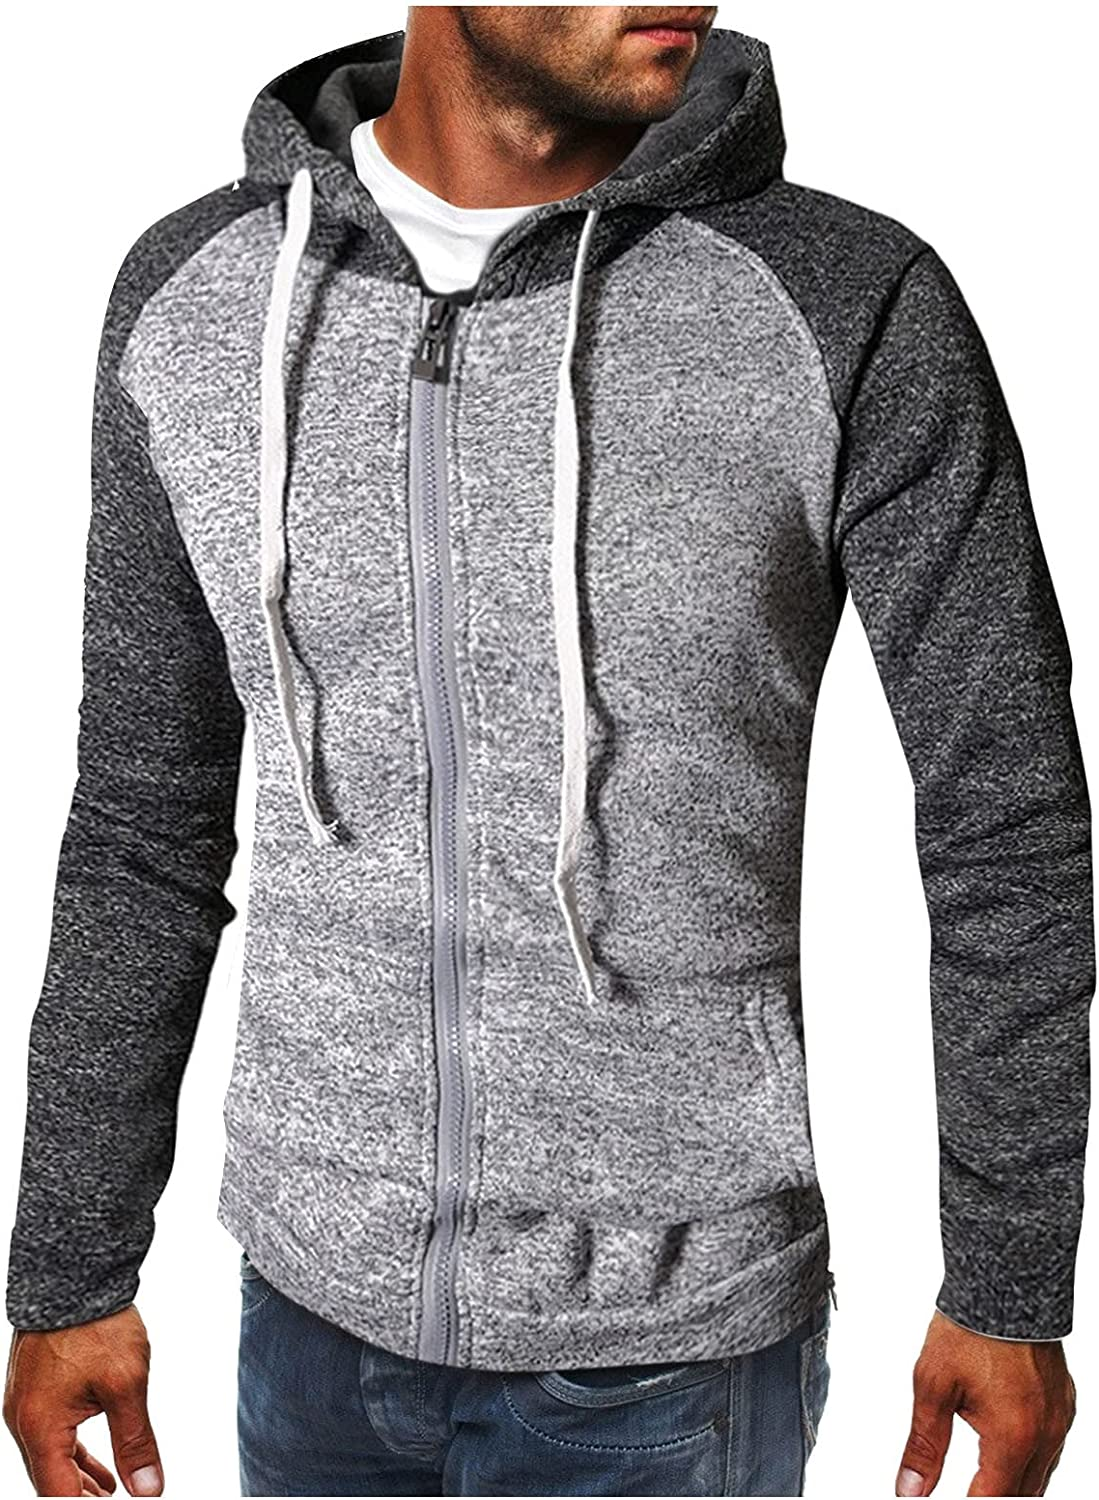 Men's Casual Hoodies Drawstring Slim-fit Patchwork Cozy Sweatershirt with Pokect